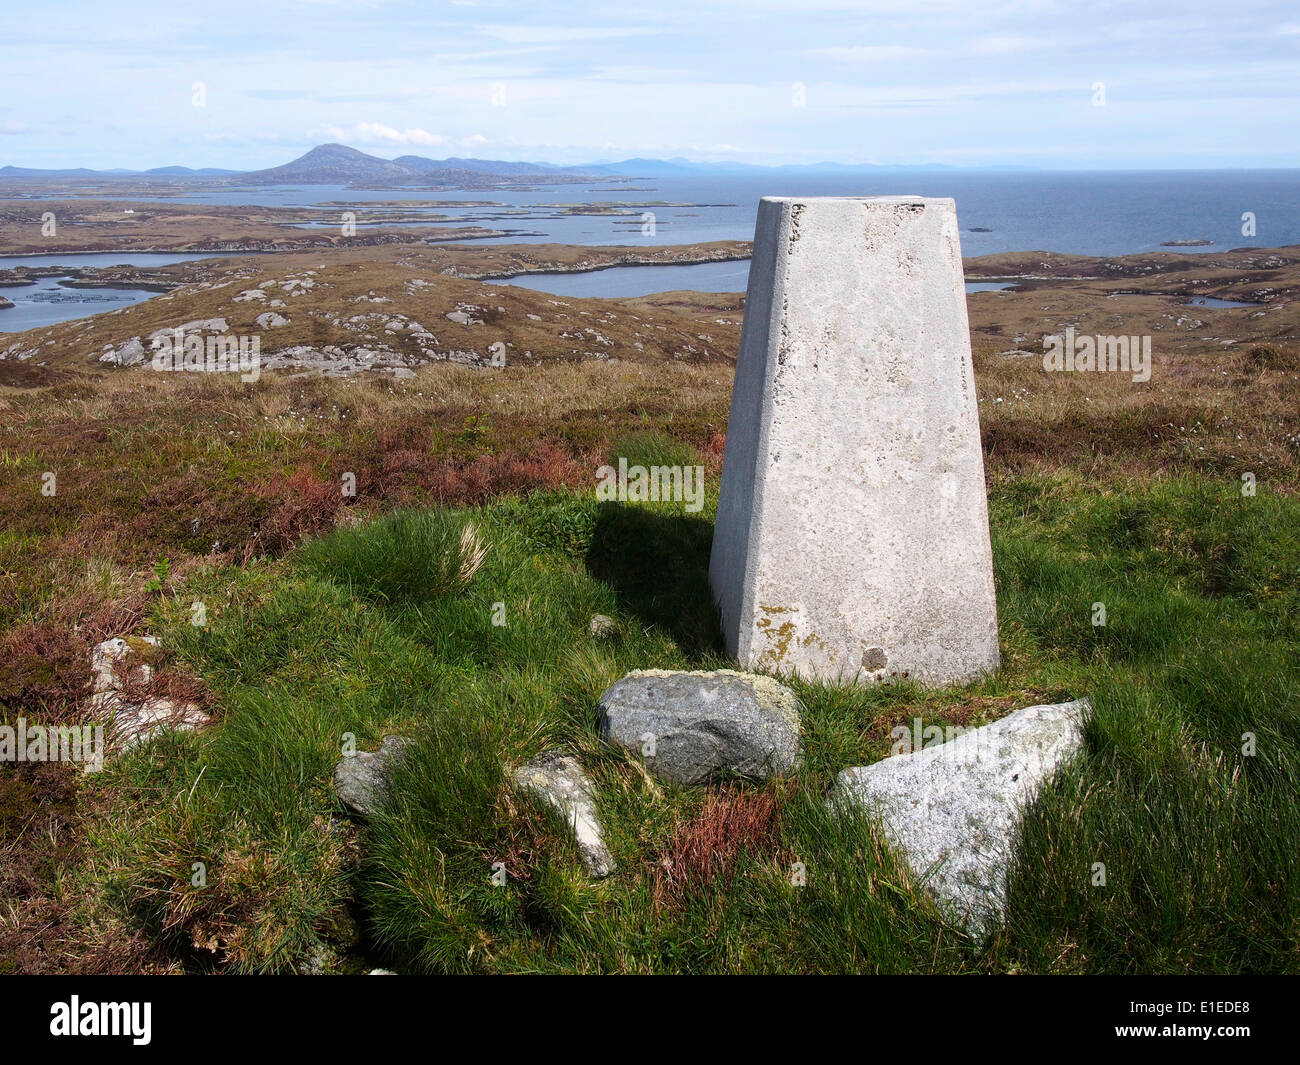 Trig point on summit of Beinn a Tuath (102m), Wiay (Fuidheigh), near Benbecula, Outer Hebrides, Scotland Stock Photo